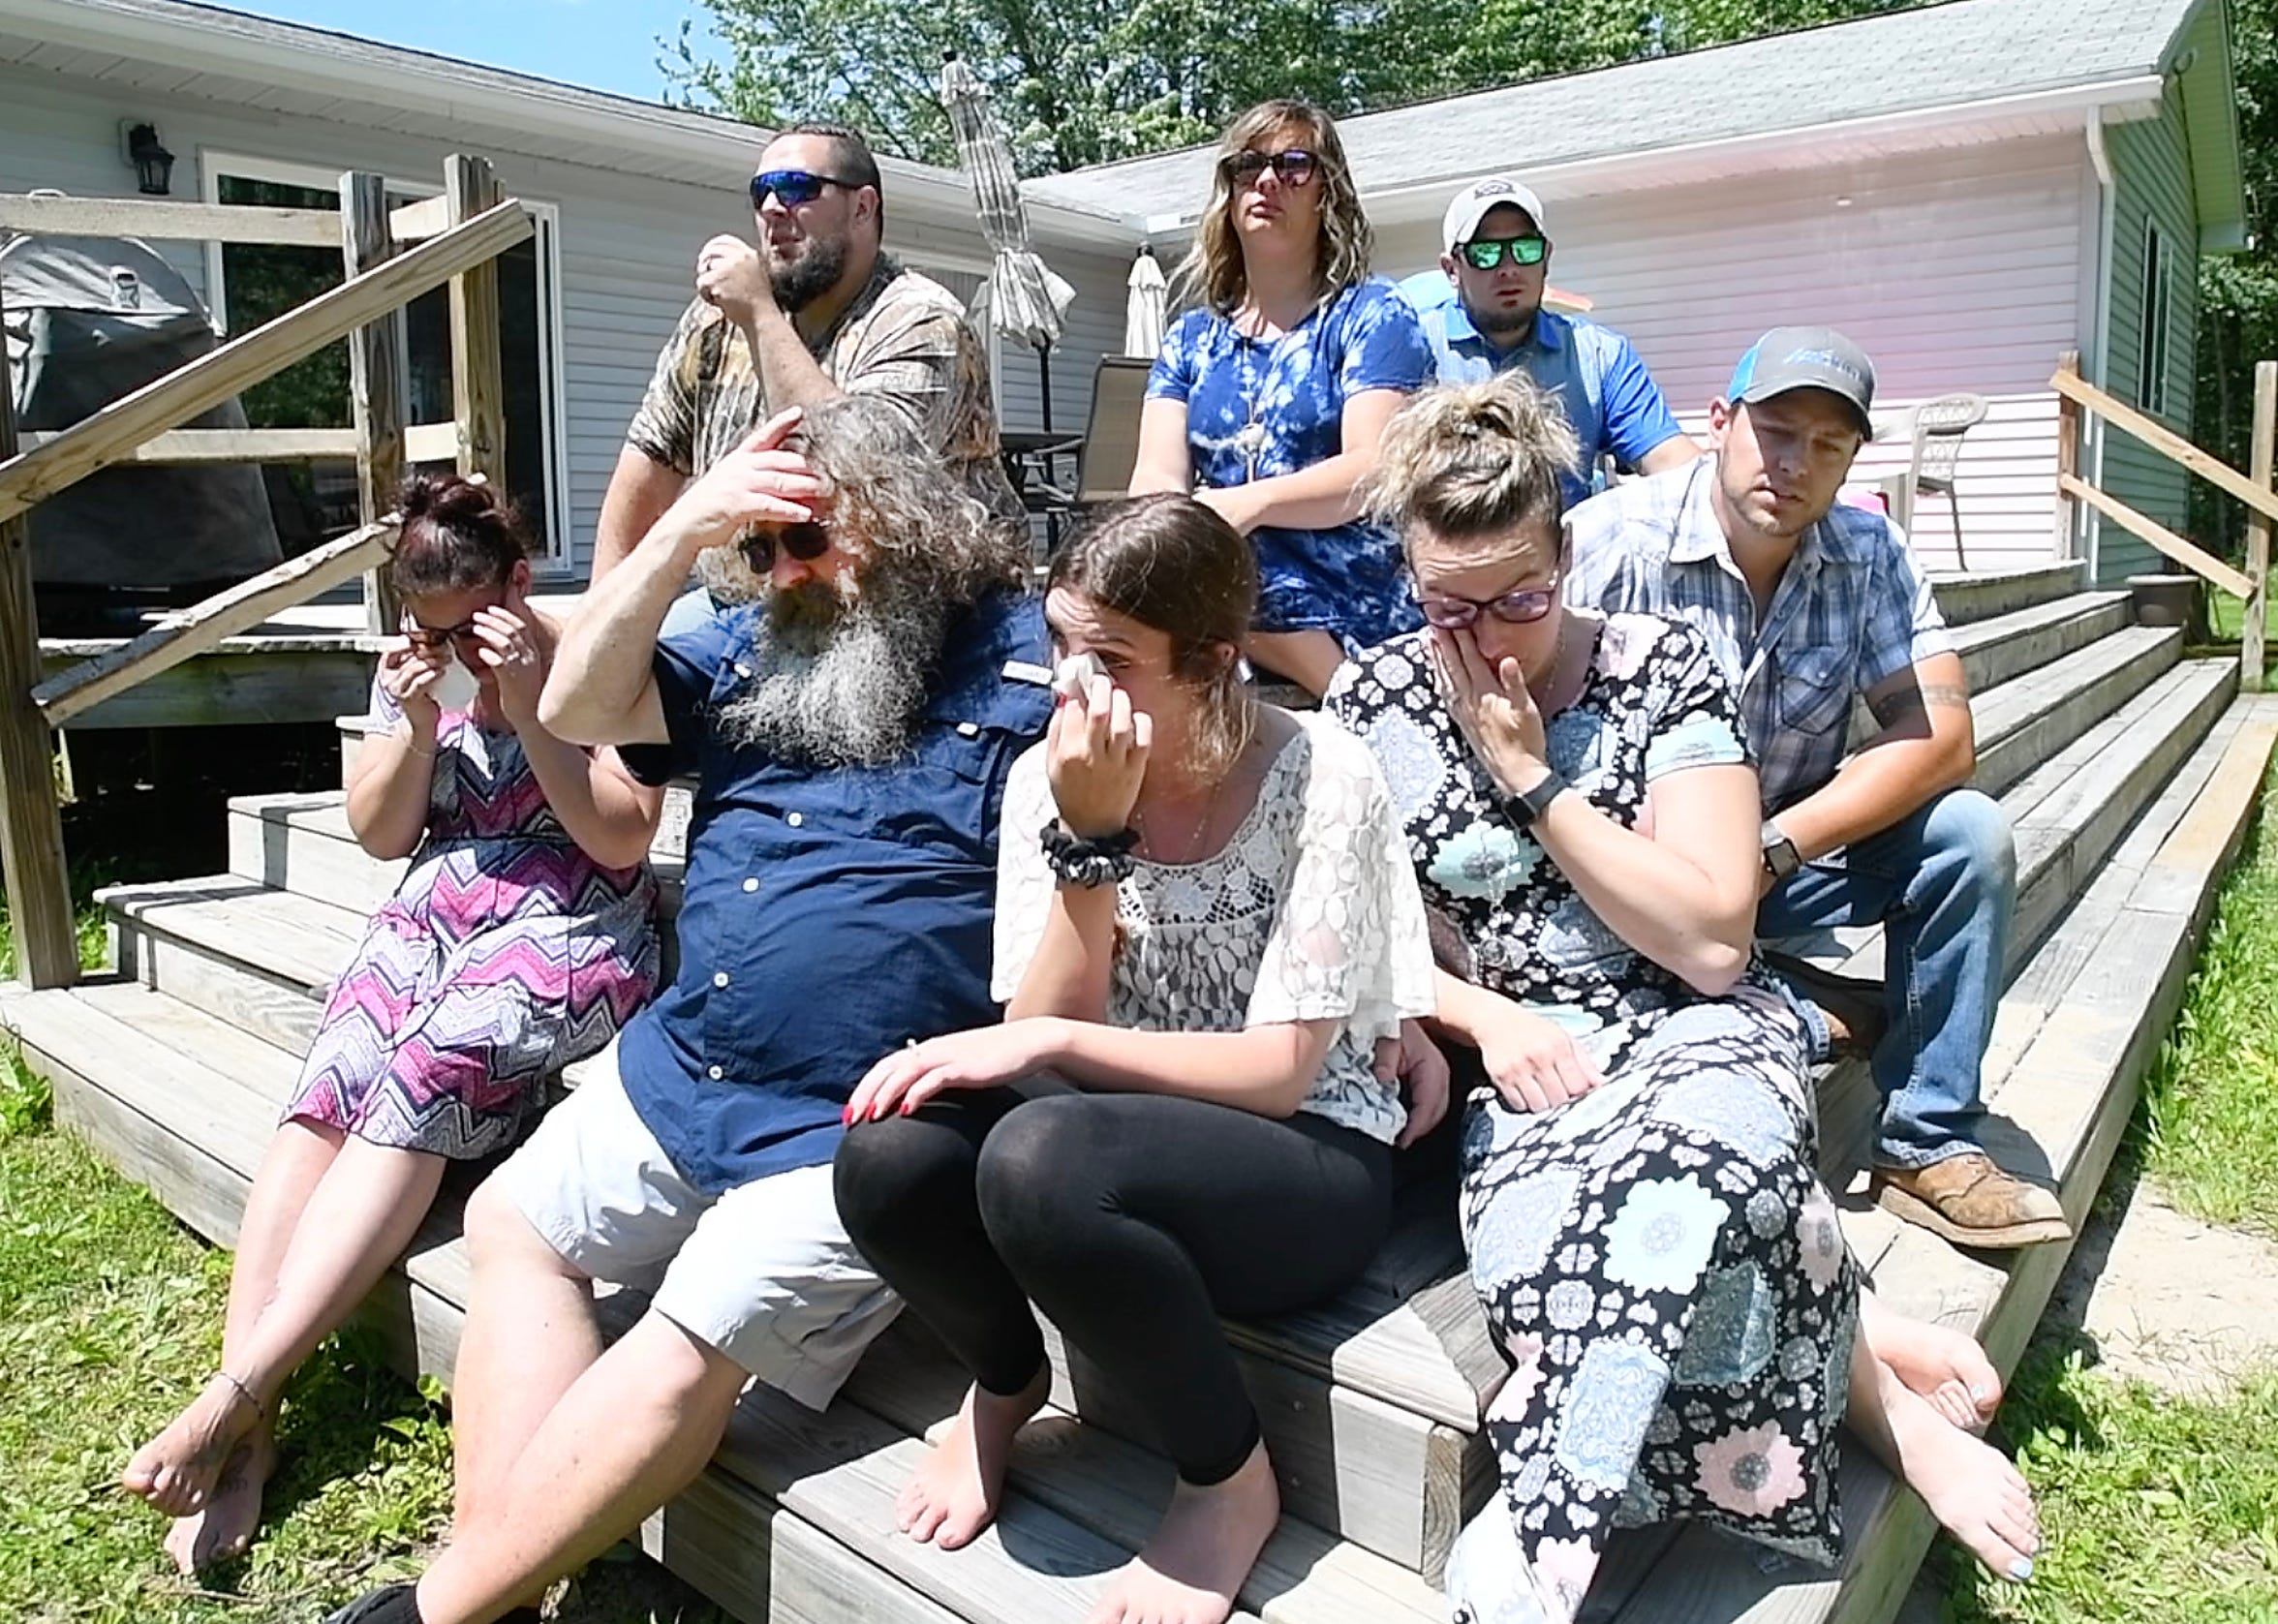 The family, daughter-in-law Savanah Eagan, son Jonathan Eagan, husband Kevin Hennig, daughter Jessica Riggs, daughter-in-law Nicole Eagan, daughter-in-law Brooke Eagan, son Joshua Eagan and son Jereme Eagan, of respiratory therapist Carrie Lynn Hennig, who died of COVID-19 speak of their mother and wife at her son's home in Beaverton on June 11, 2020.